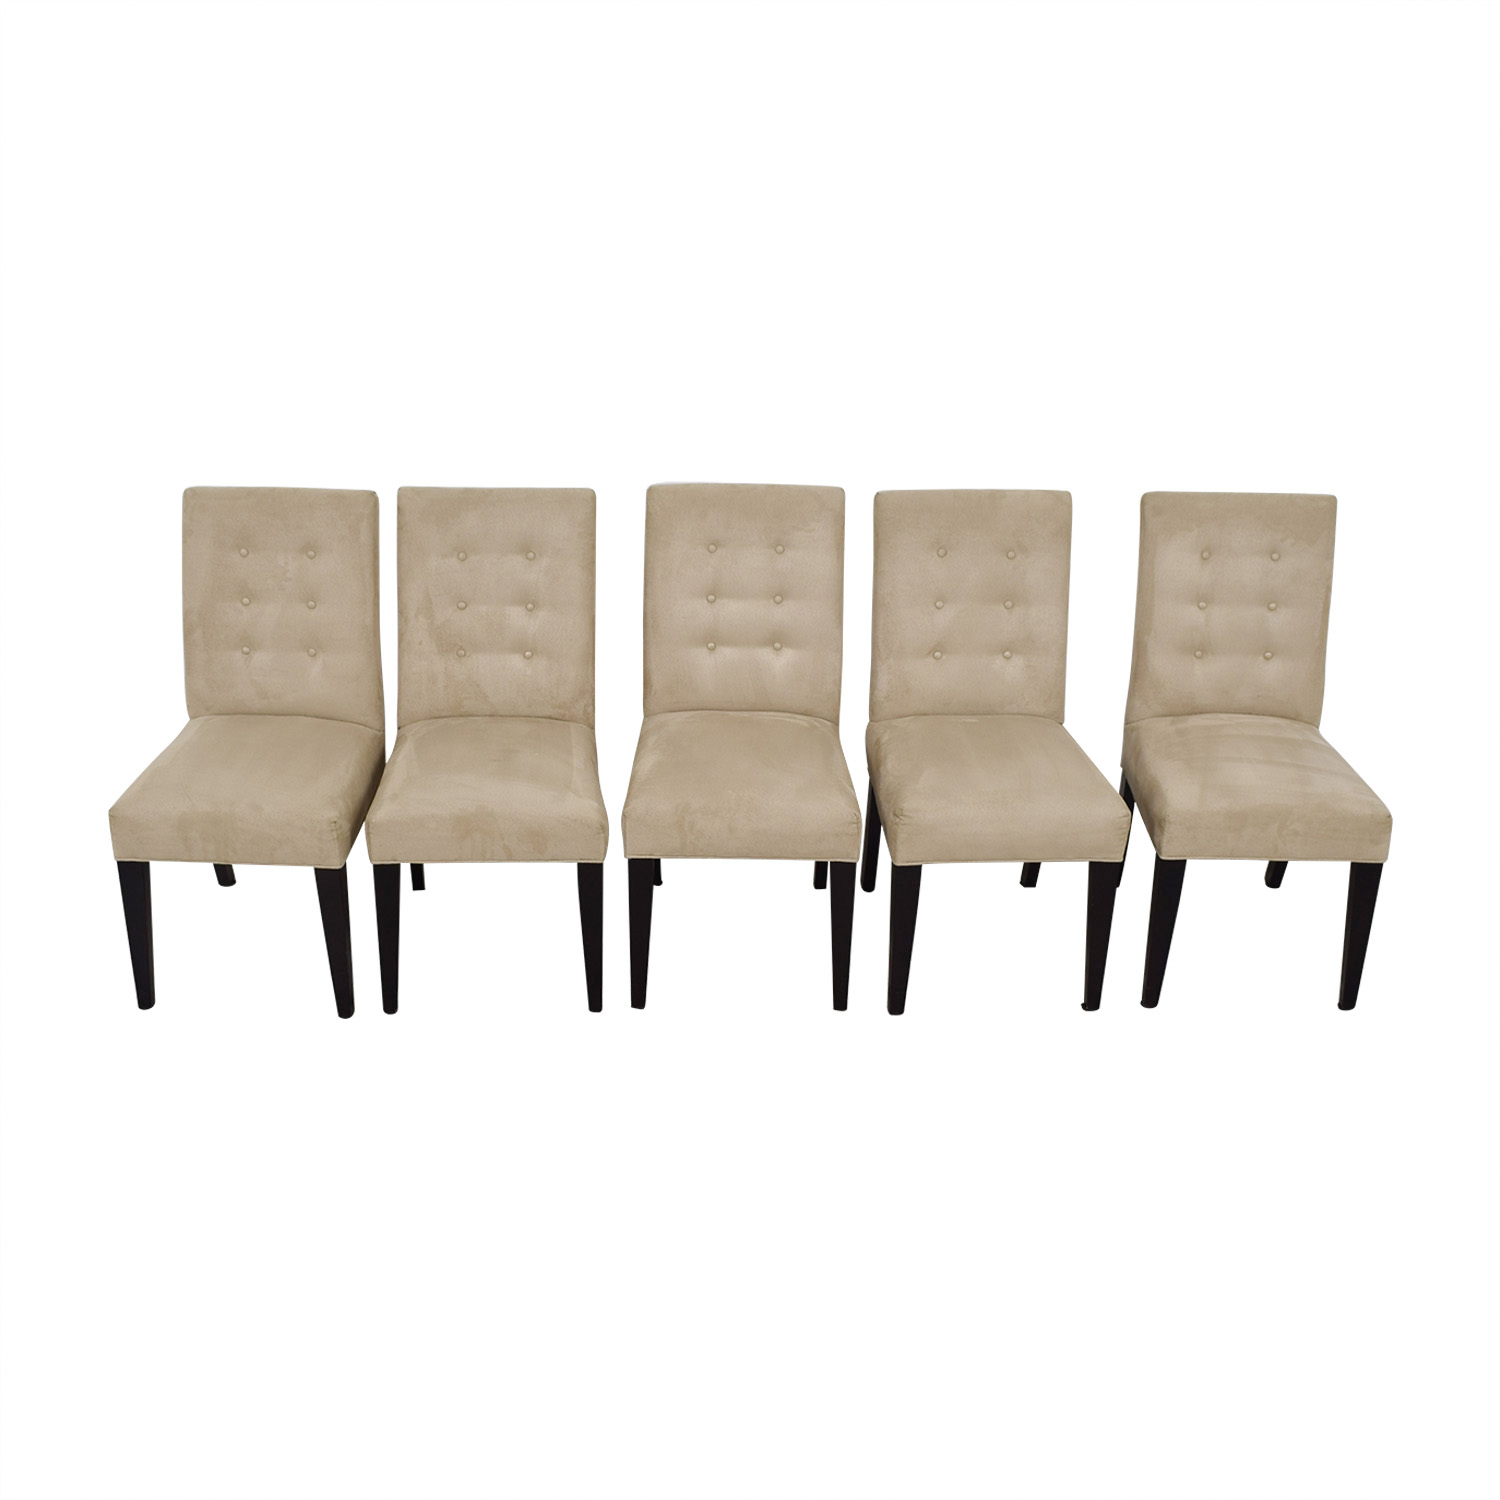 shop Mitchell Gold + Bob Williams Grey Tufted Chairs Mitchell Gold + Bob Williams